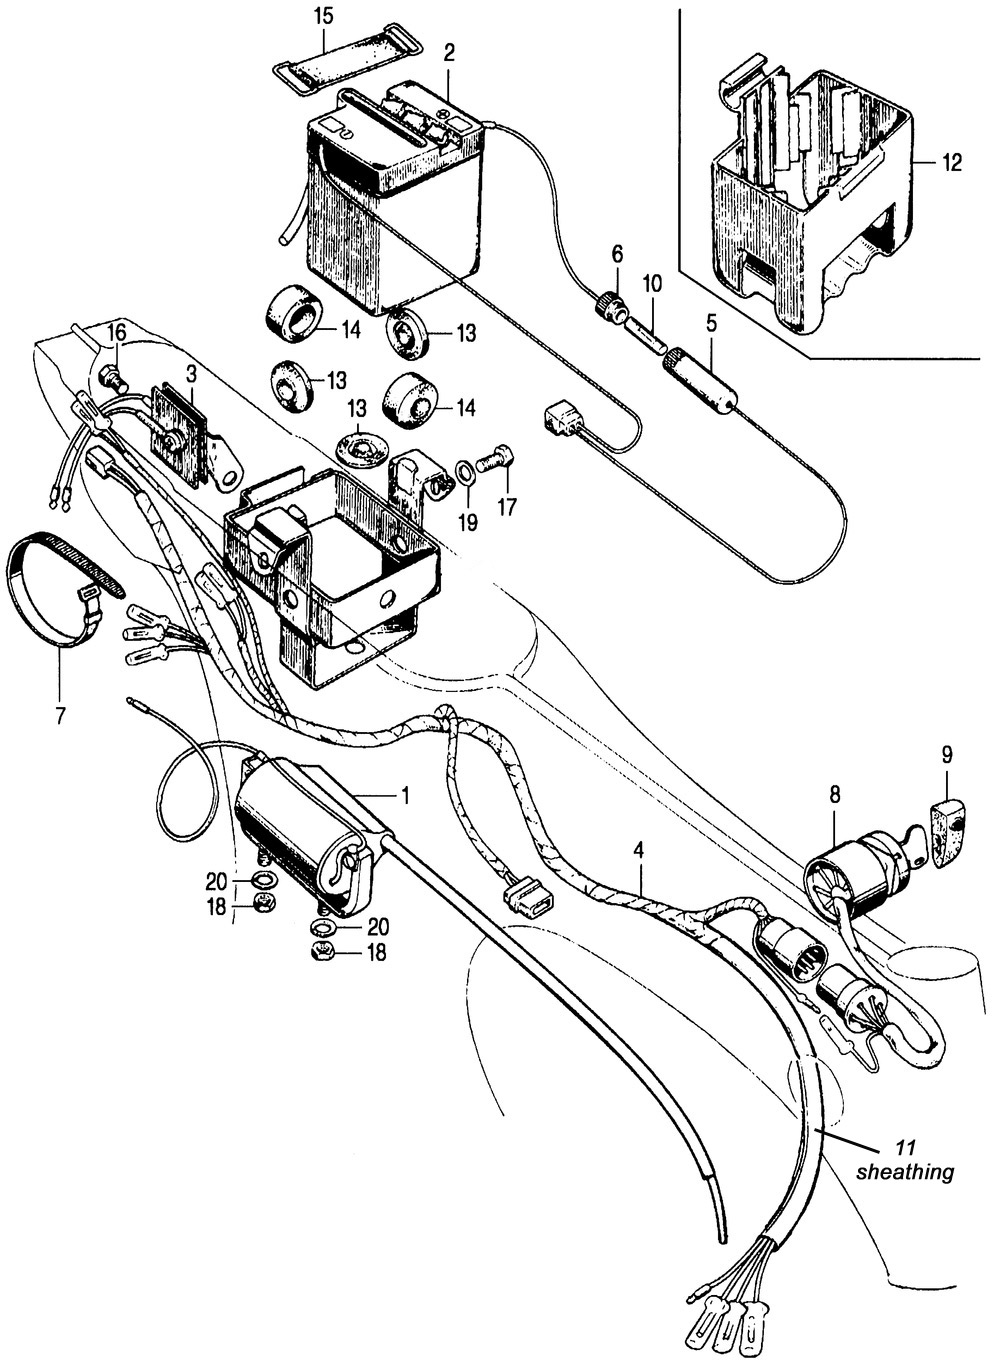 Wiring Harness, Battery